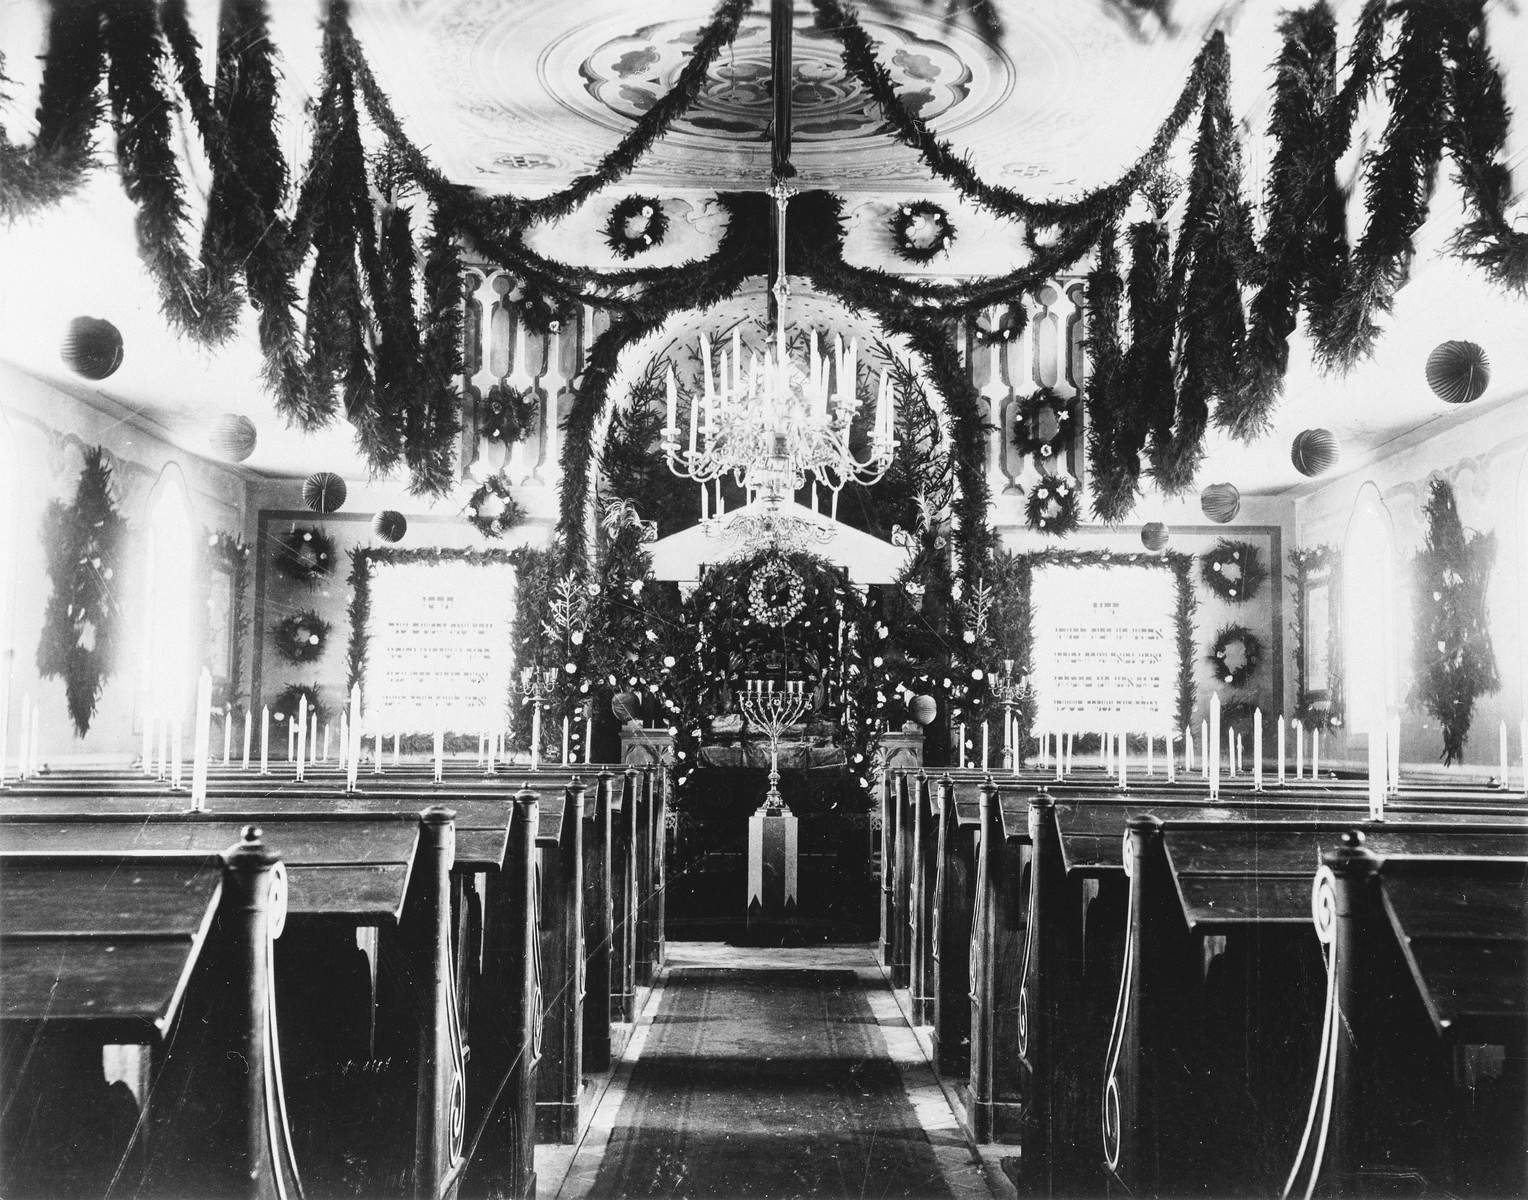 View of the sanctuary in the Buttenwiesen synagogue that is decorated with evergreens for the winter season.  The synagogue in Buttenwiesen was not destroyed during Kristallnacht.  After the war it was converted into a school and later used for other purposes.